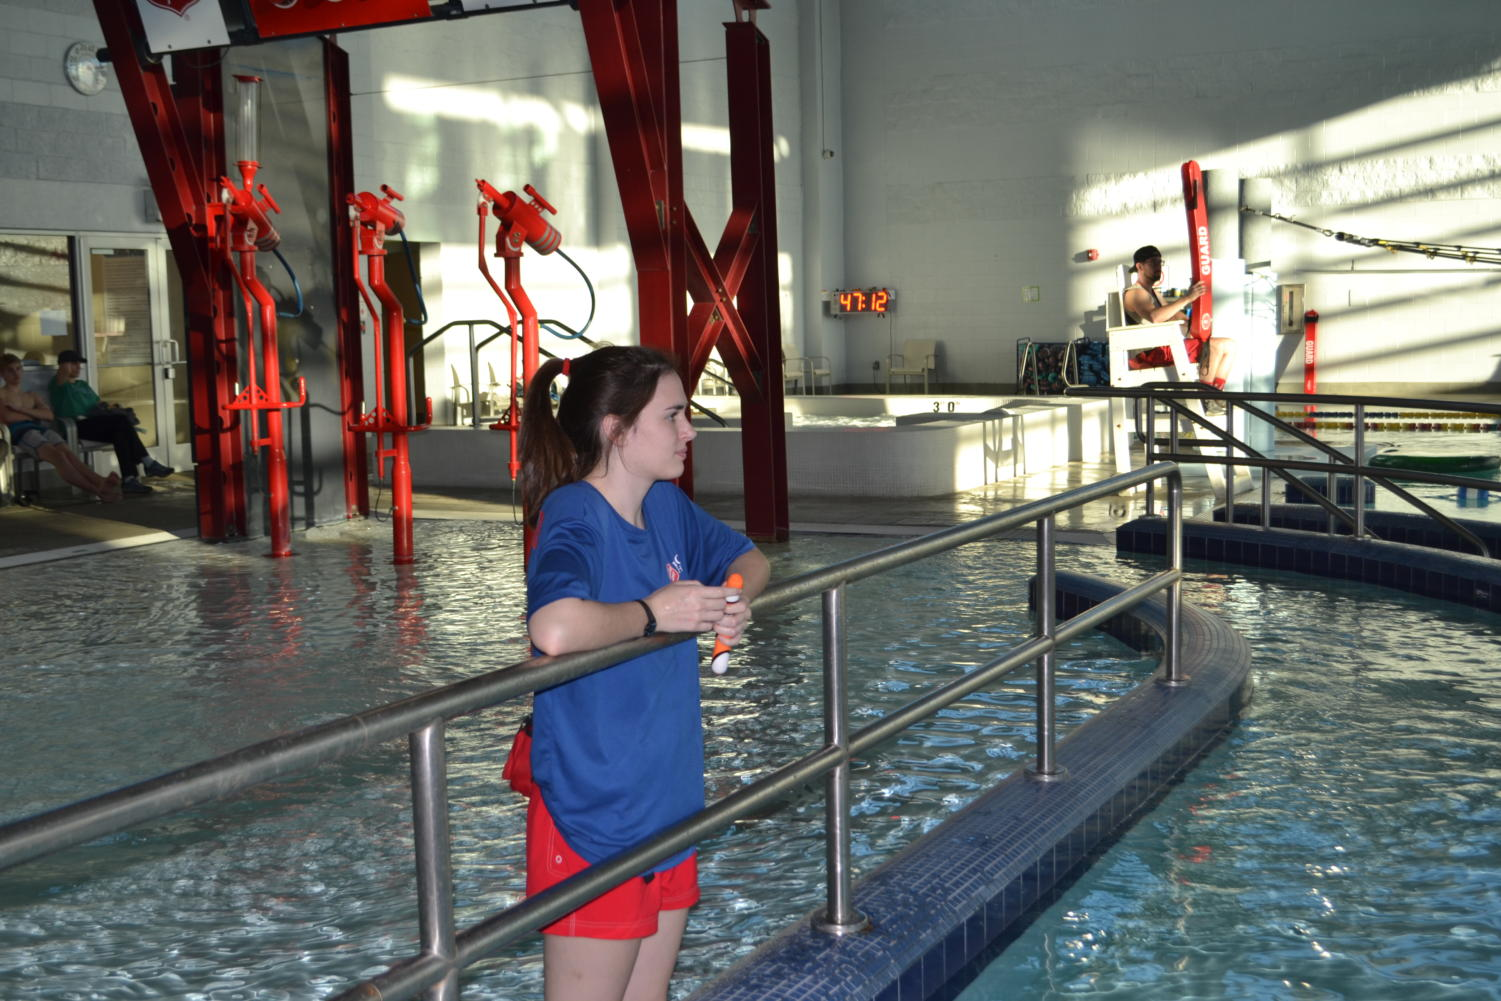 Andrea Brimhall (11) watches to make sure everyone is safe in the pool while on lifeguard duty at the Kroc Center.